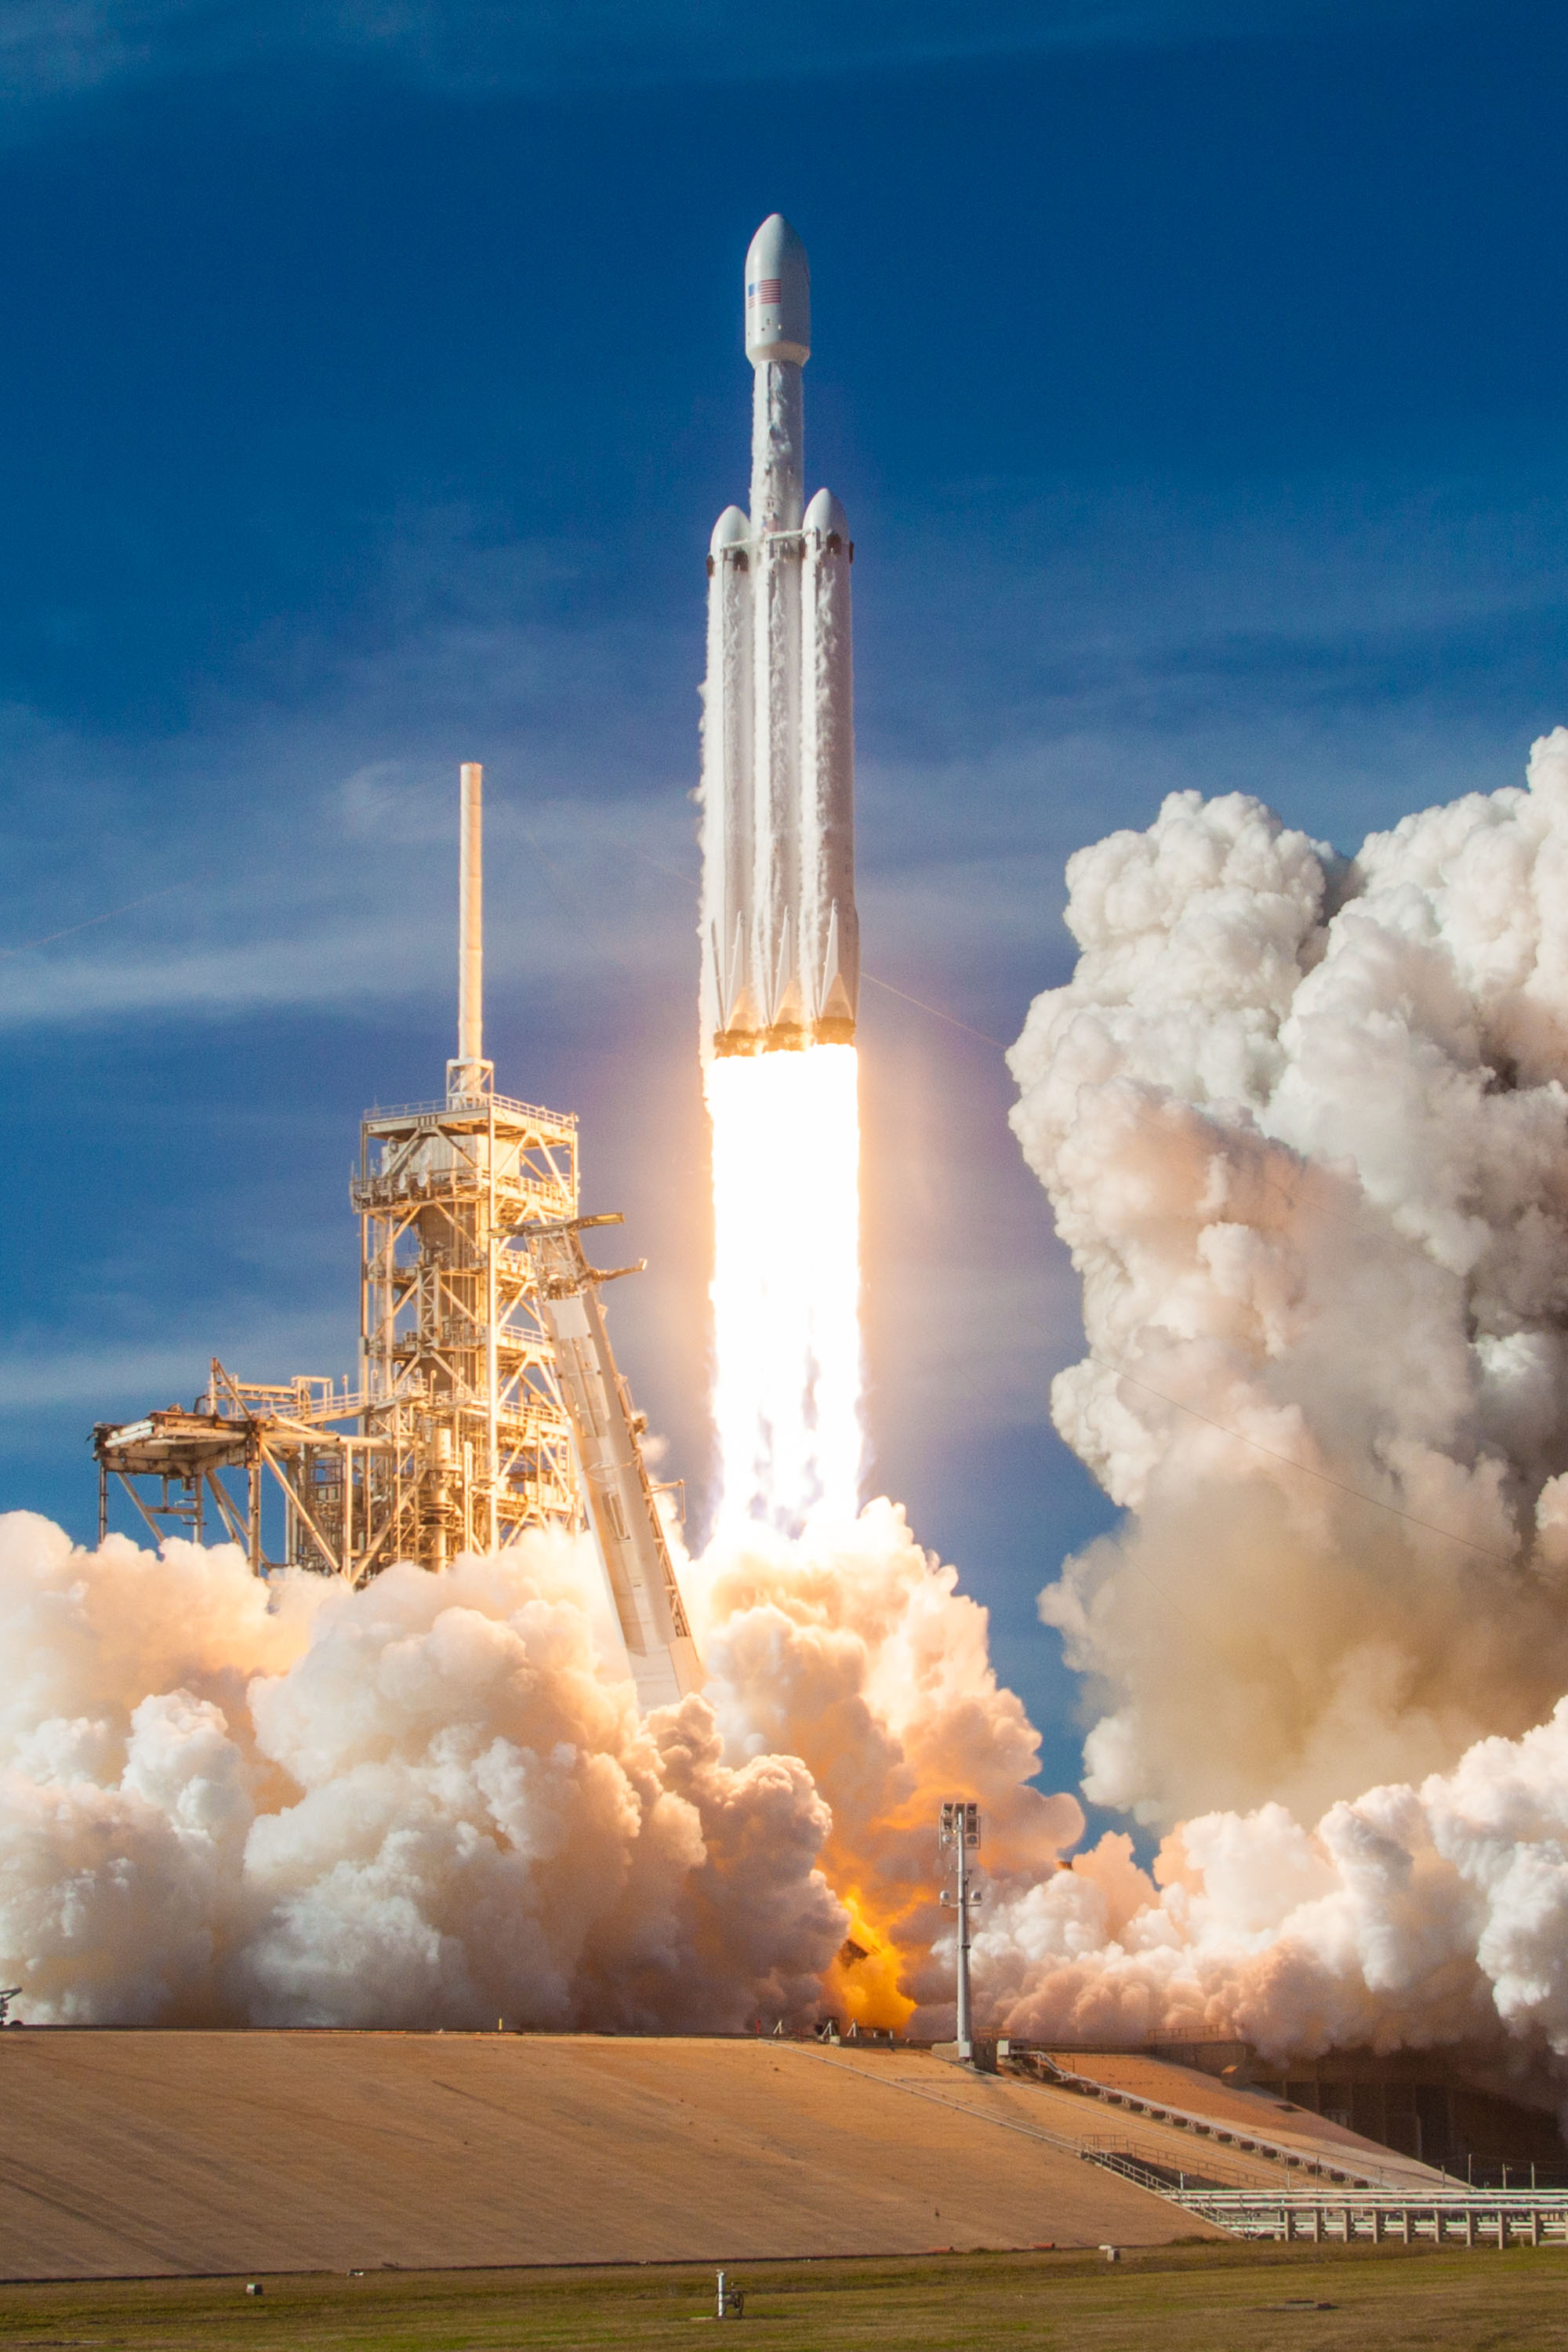 Falcon Heavy liftoff from 39A32 (SpaceX)